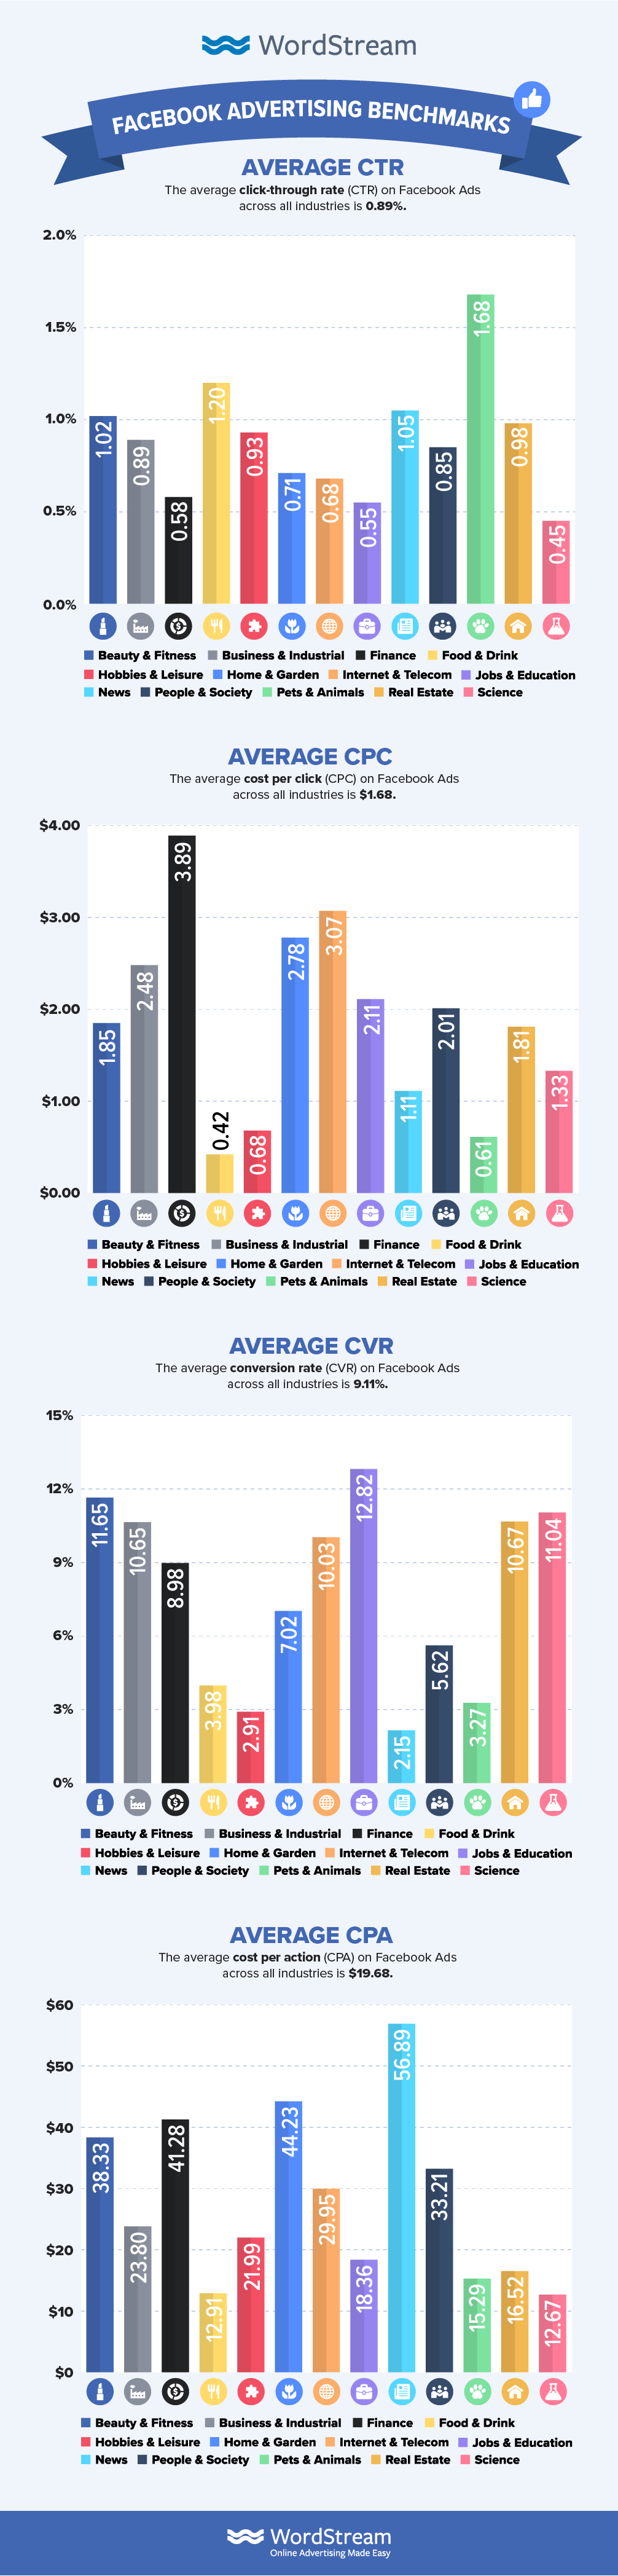 the complete facebook benchmarks for 2019